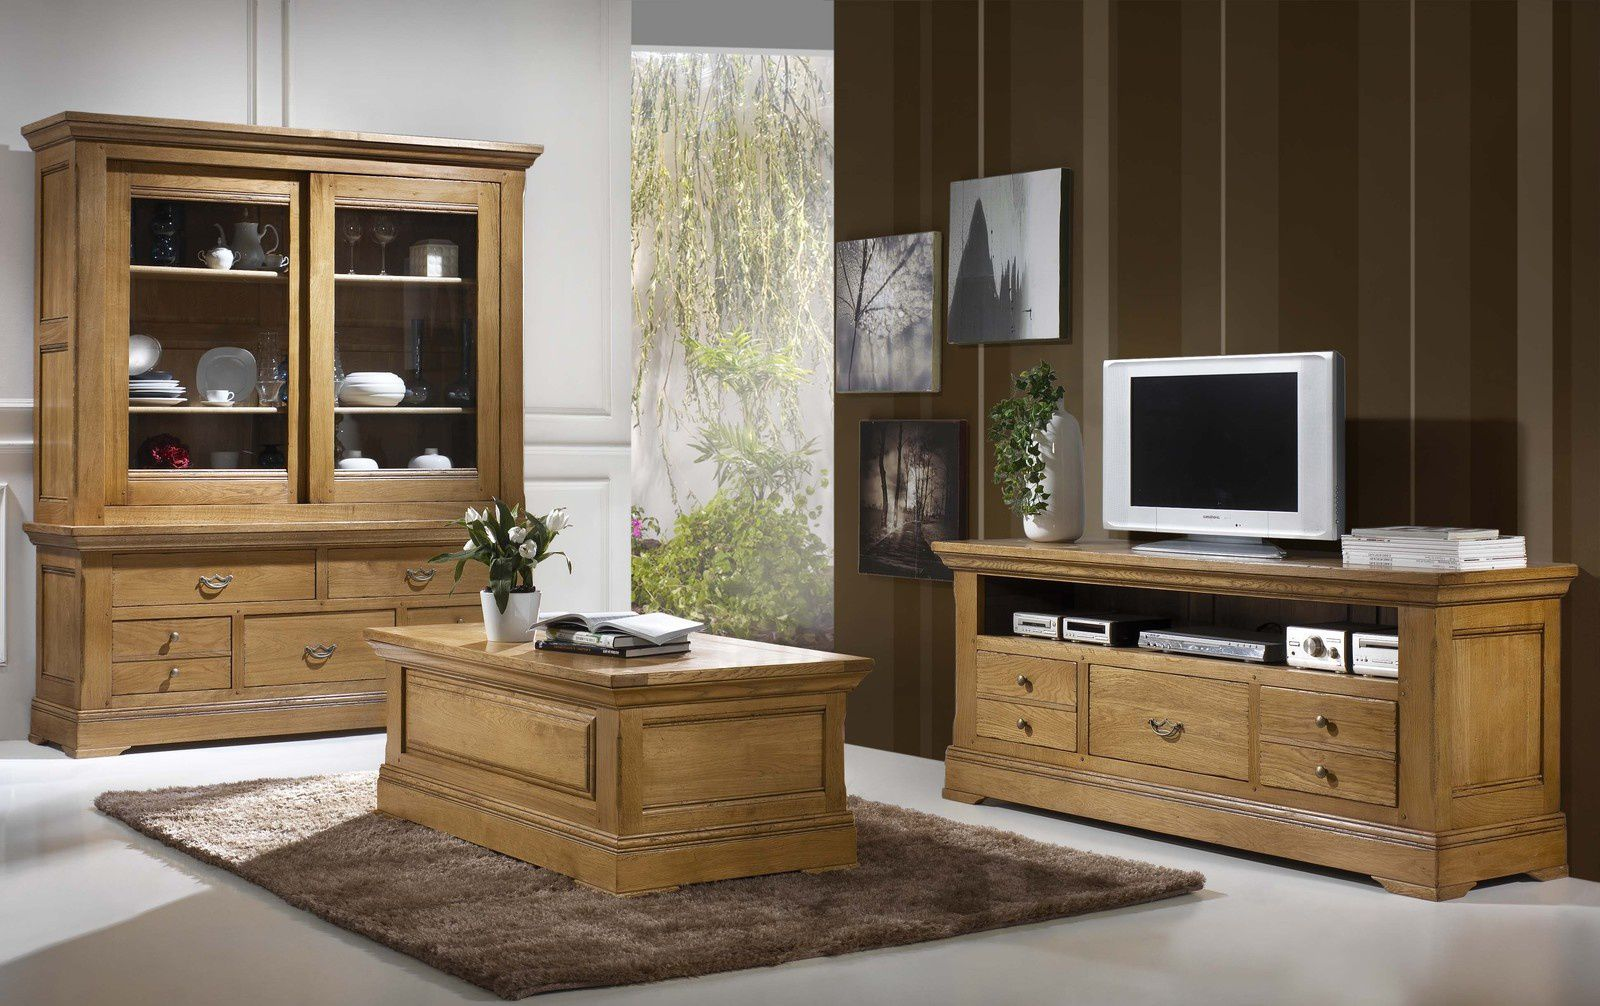 salle manger campagne rustique en ch ne massif. Black Bedroom Furniture Sets. Home Design Ideas